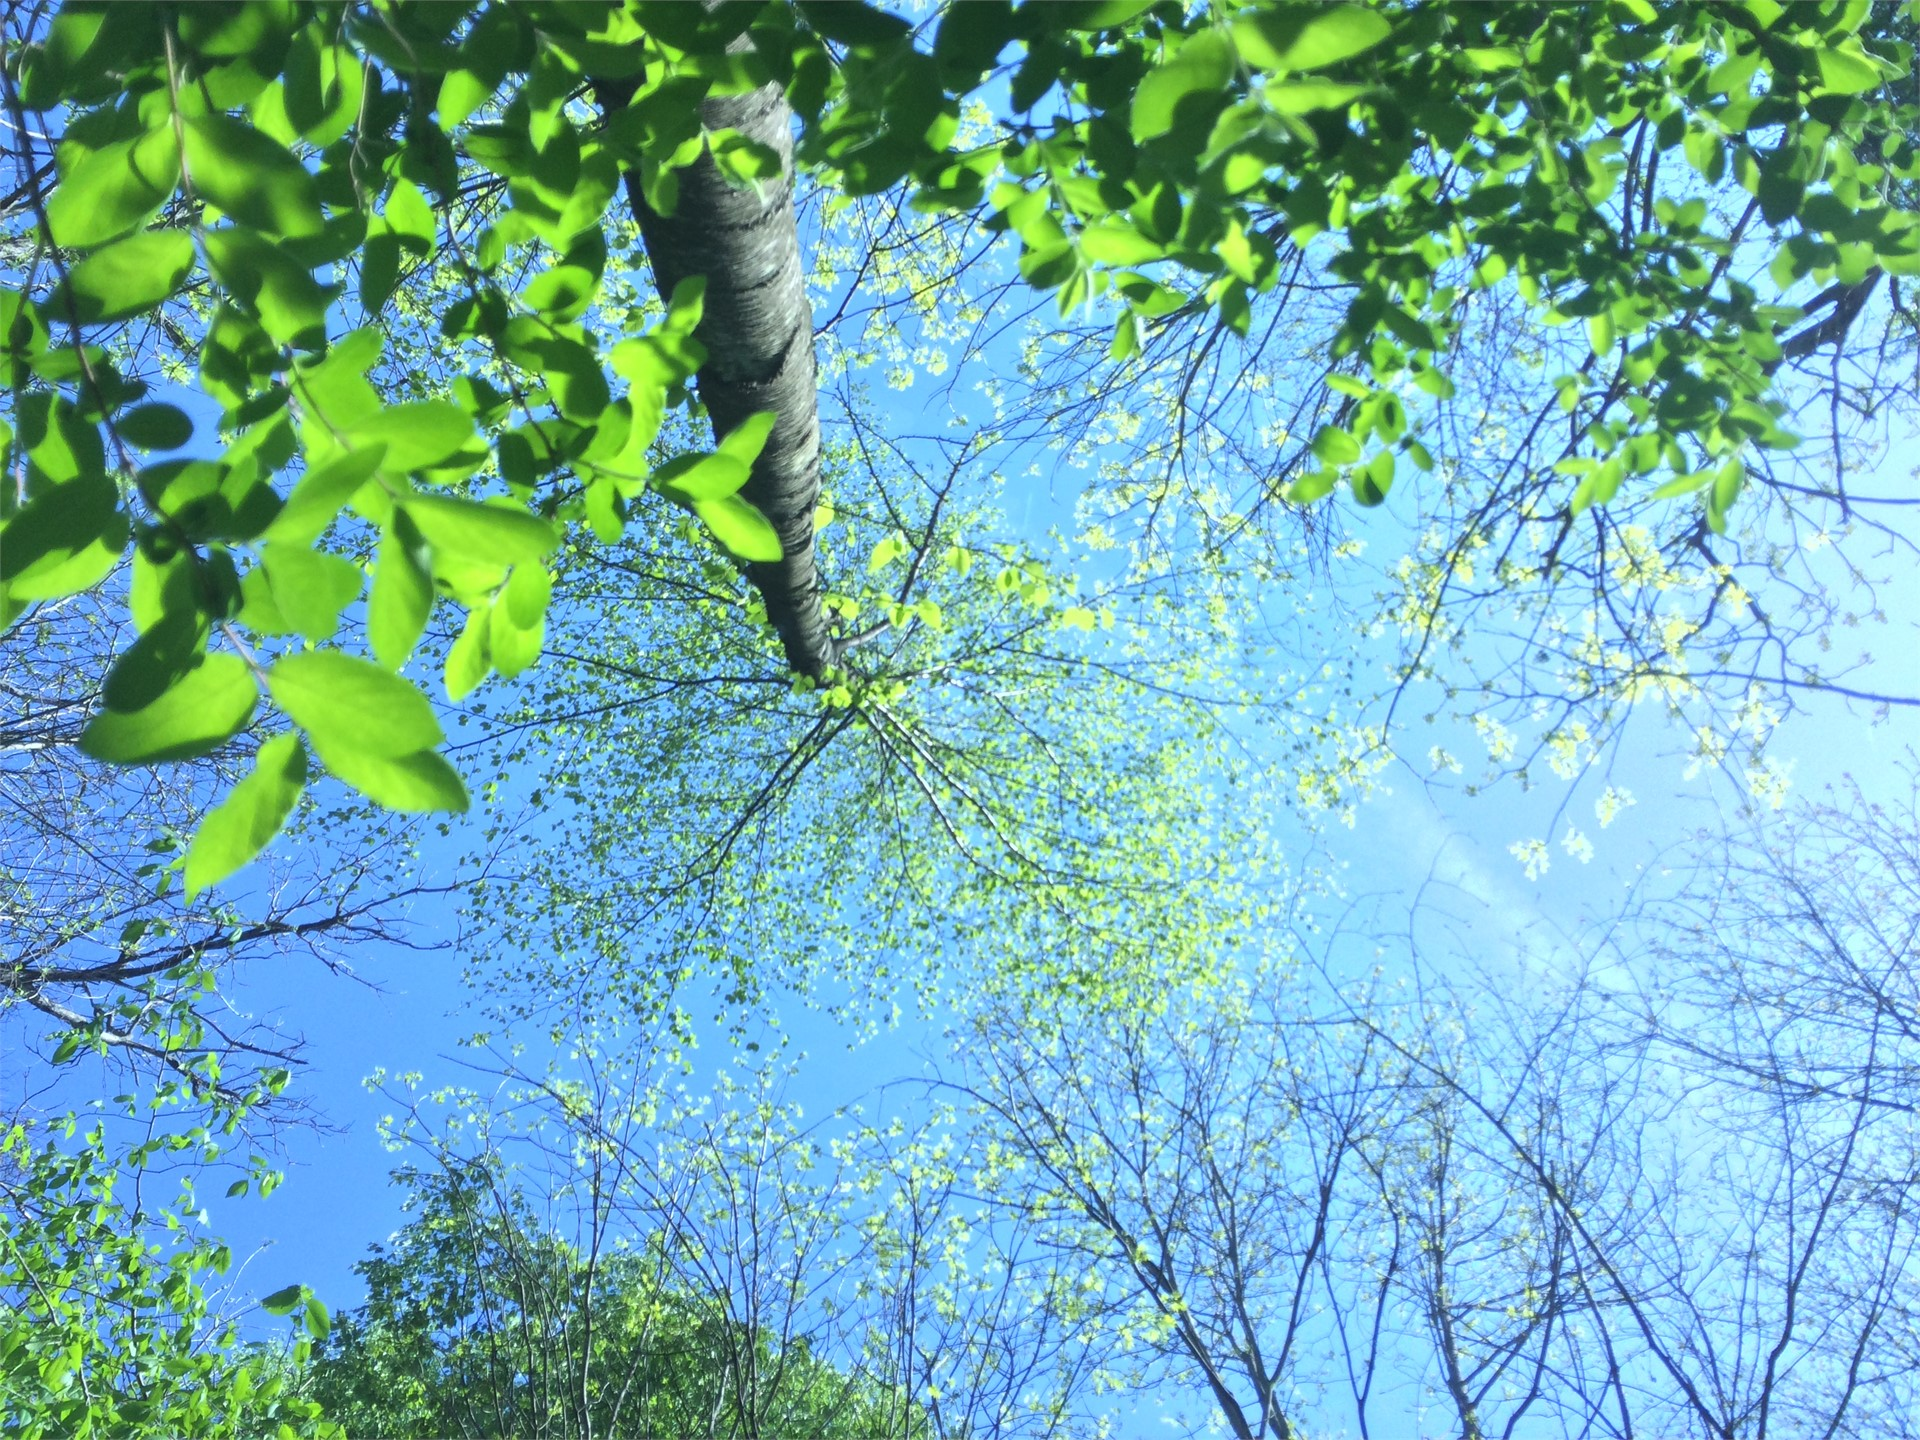 This is a photo looking upward toward the sky and the tree canopy.